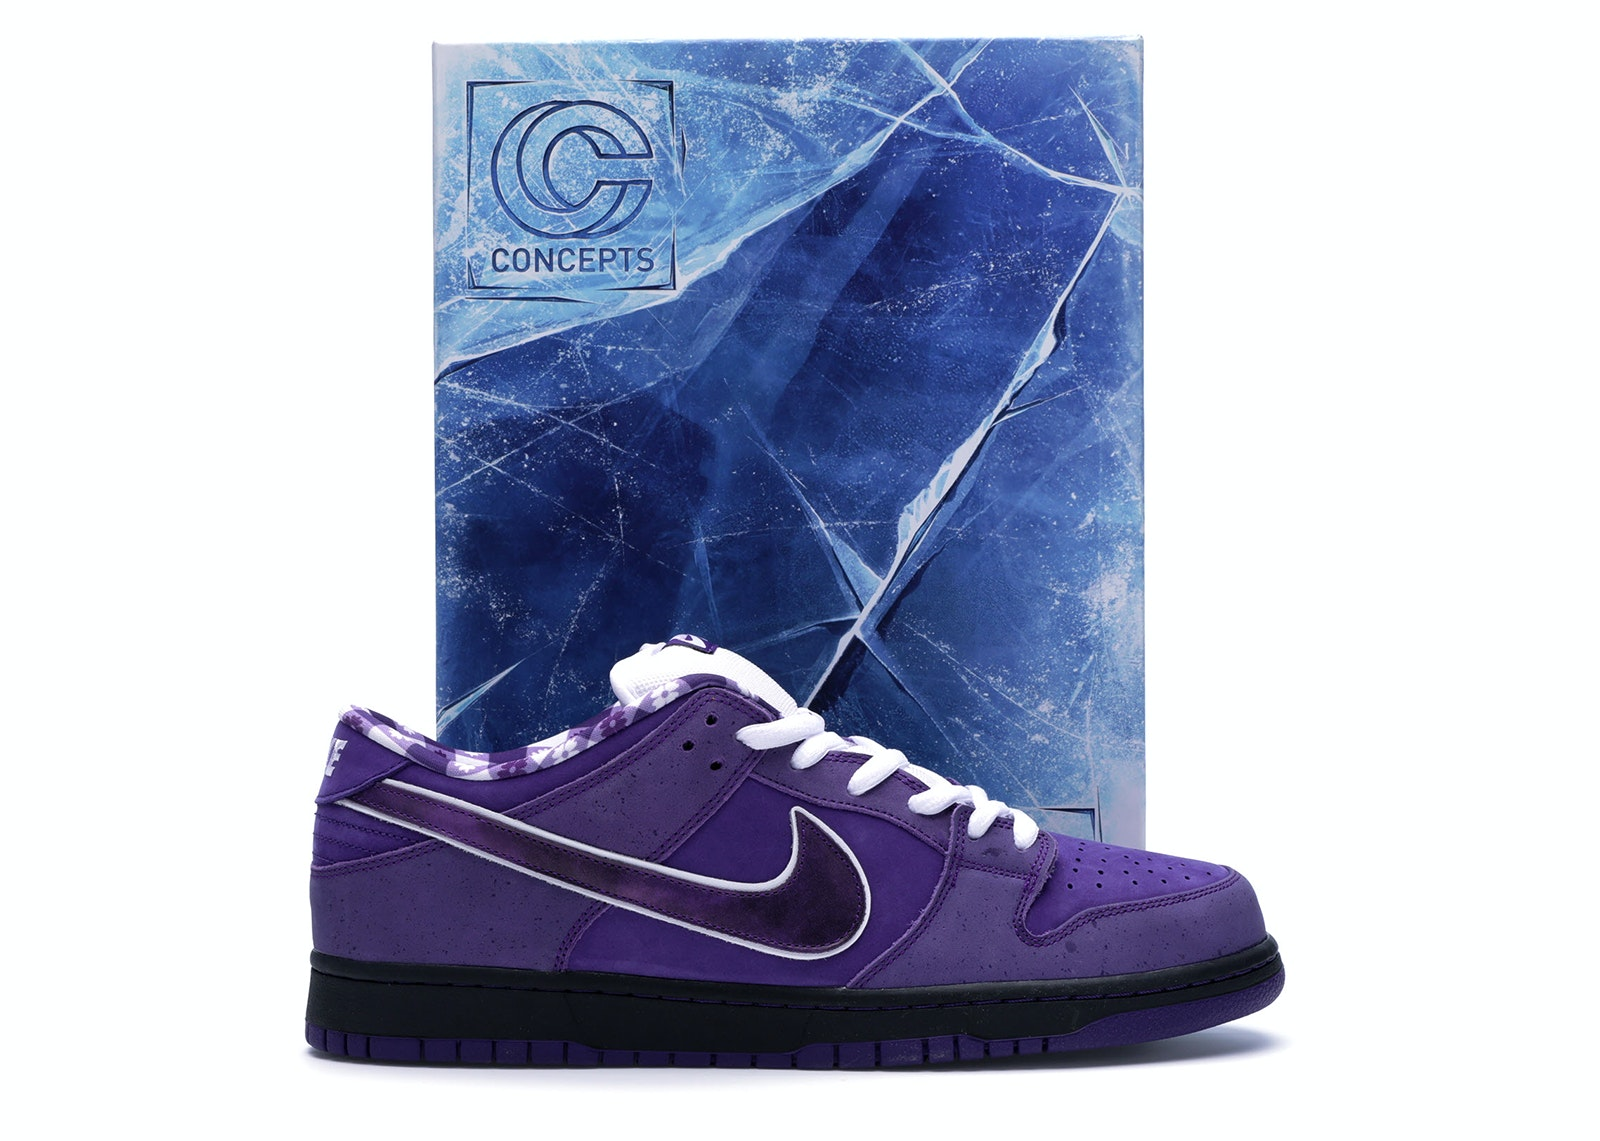 Nike SB Dunk Low Concepts Purple Lobster (Special Box)